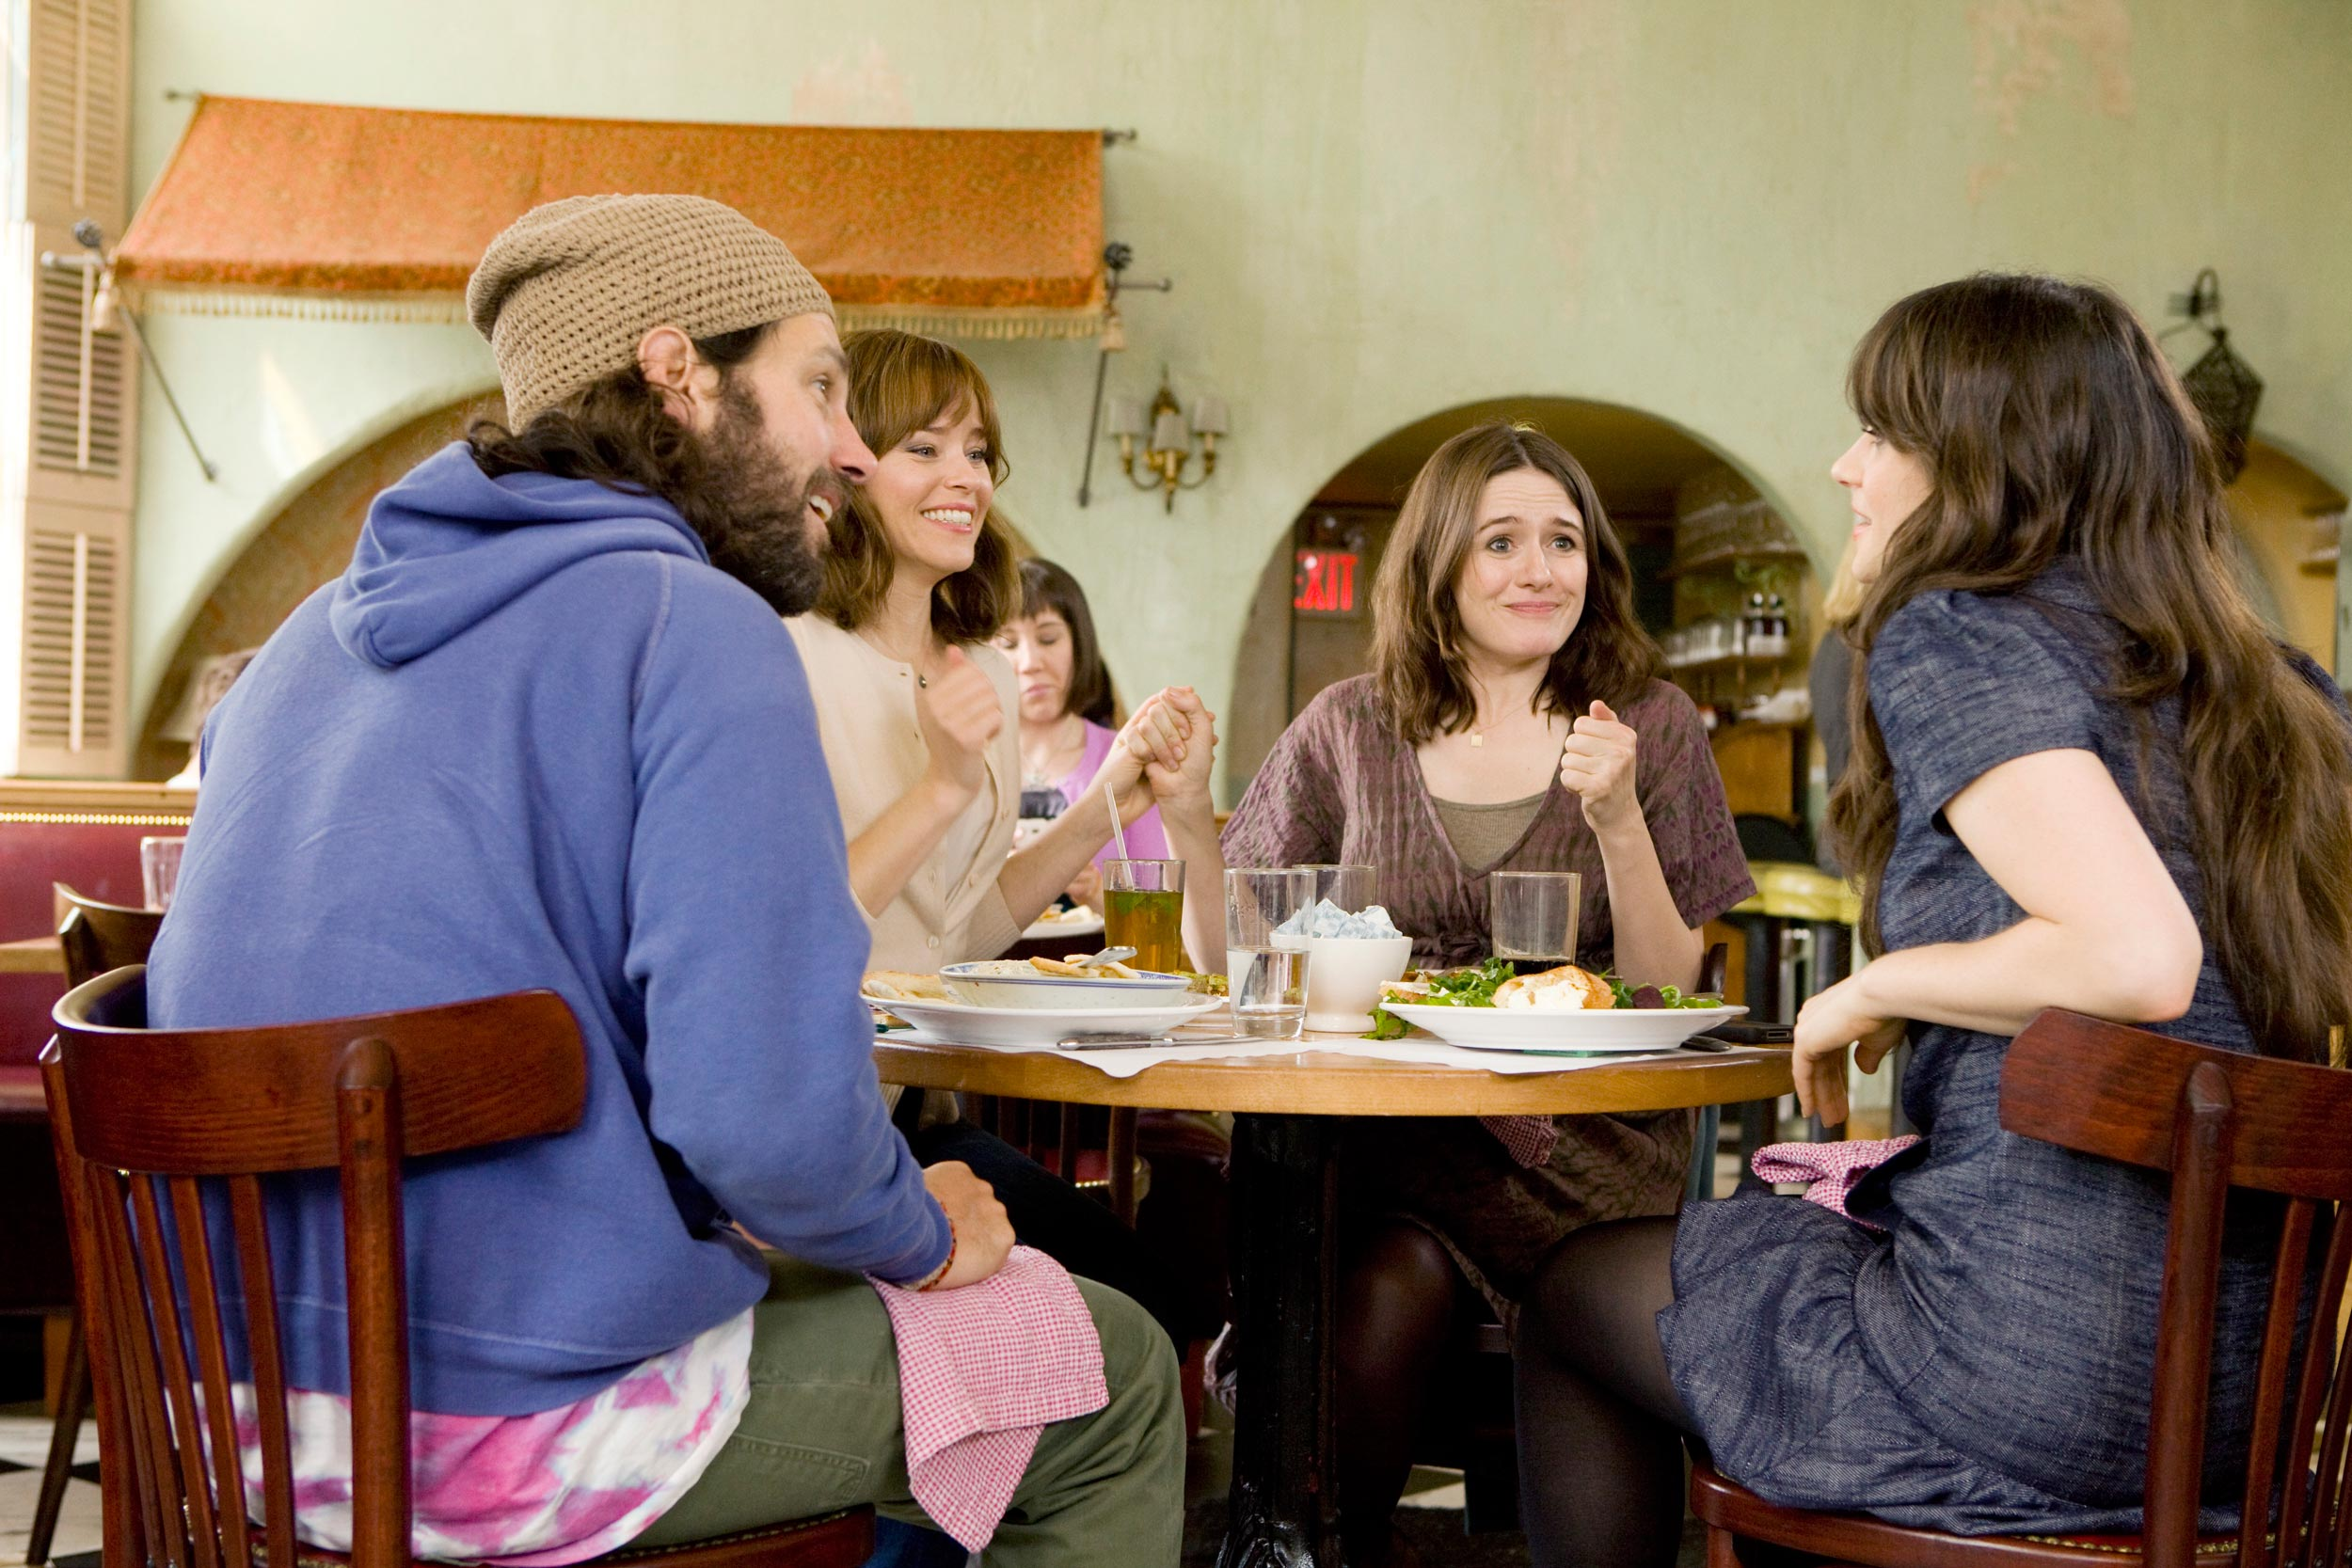 Elizabeth Banks, Zooey Deschanel, Emily Mortimer and Paul Rudd in Our Idiot Brother